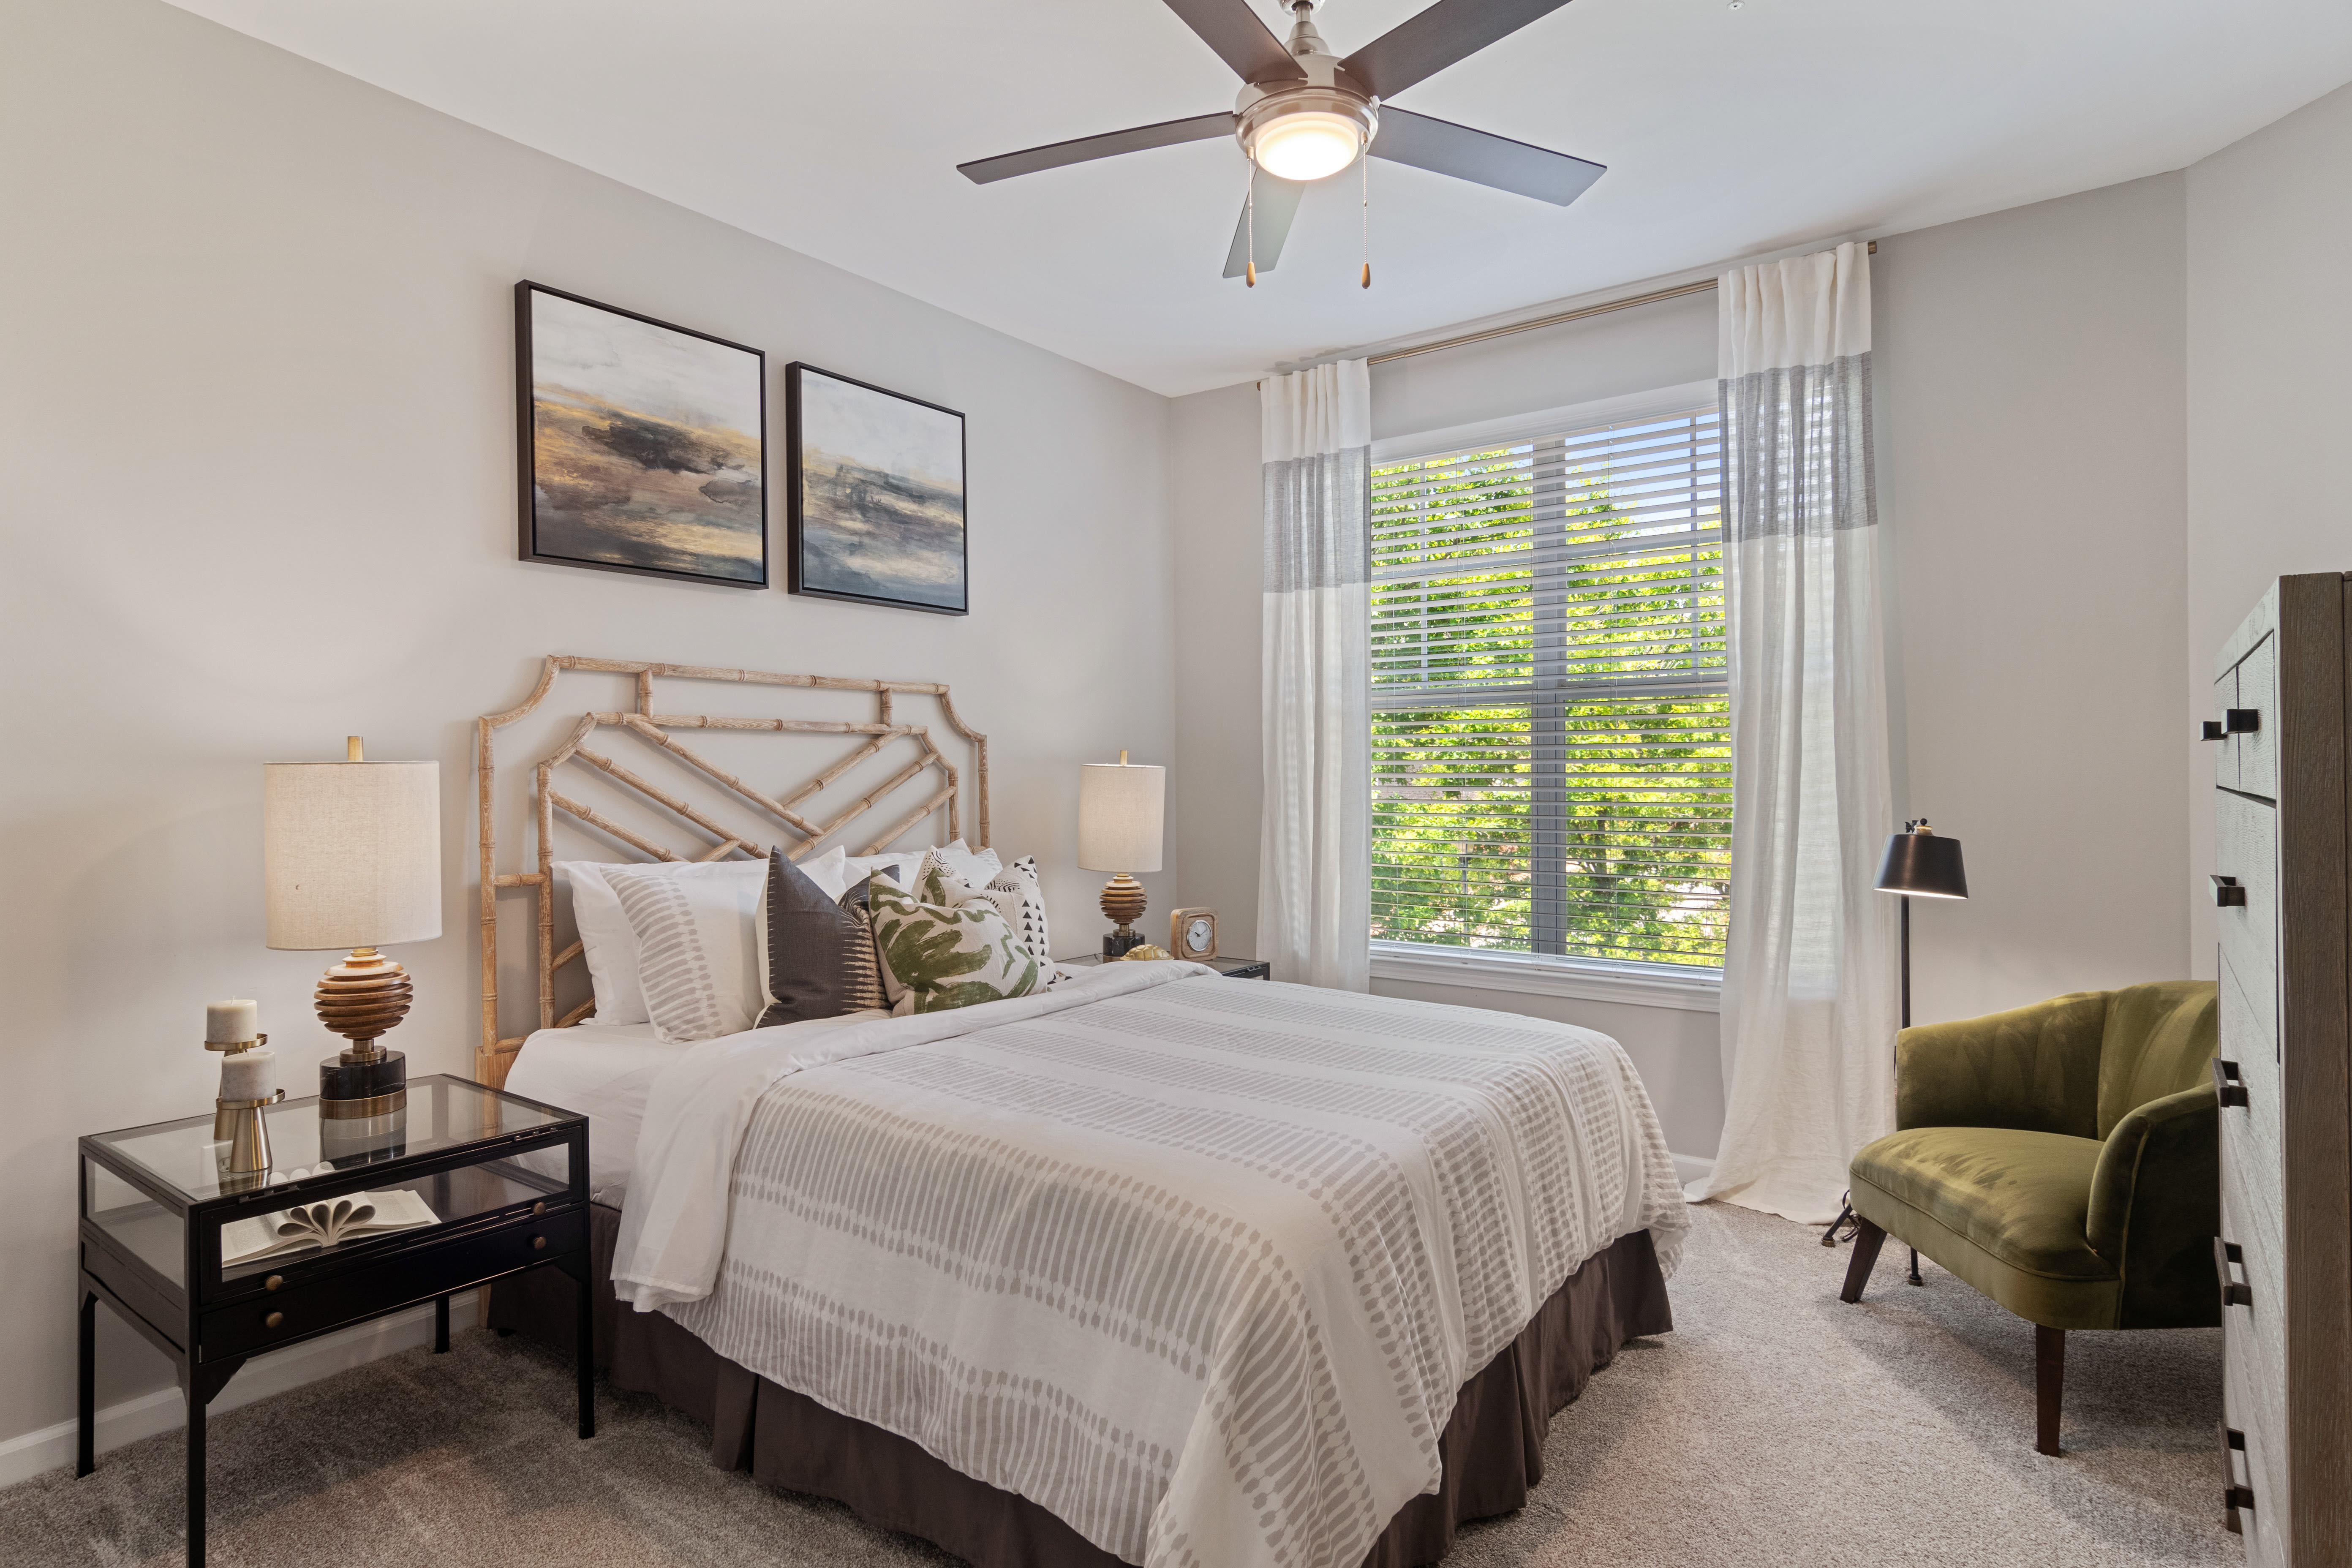 Spacious bedroom with ceiling fan at Emblem Alpharetta in Alpharetta, Georgia